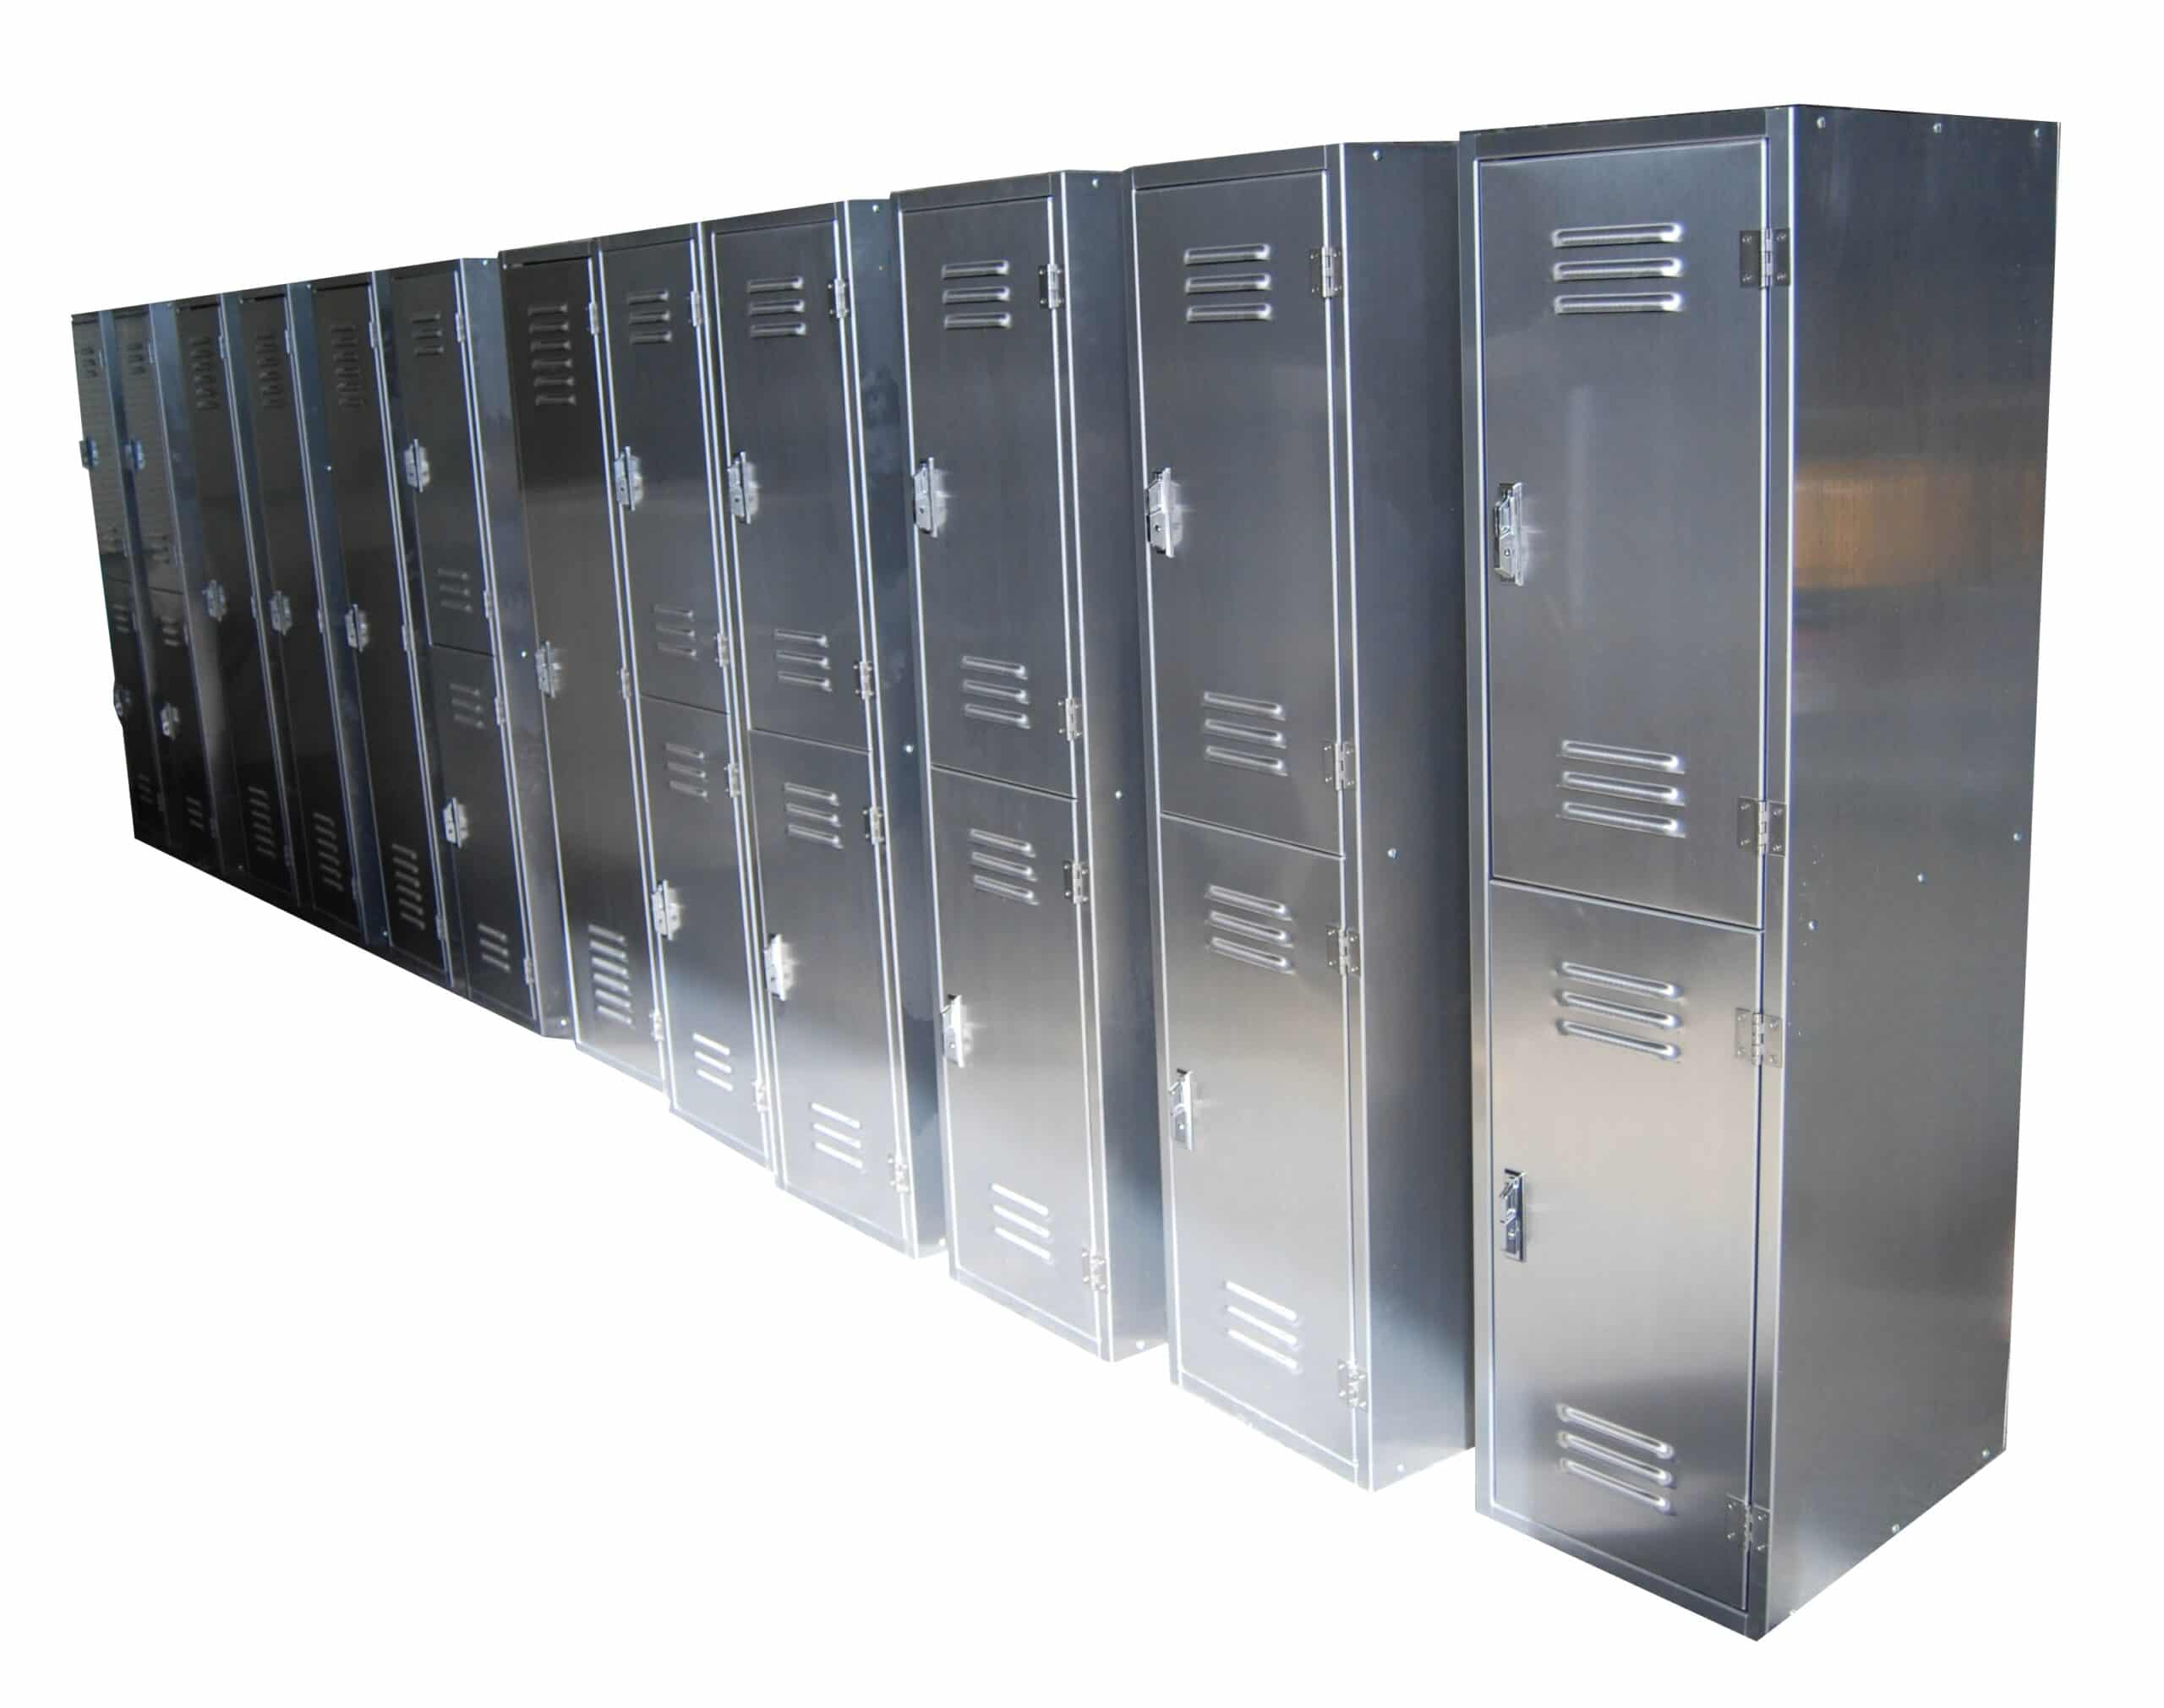 Rich results on Google's SERP when searching for 'two tier aluminum locker'